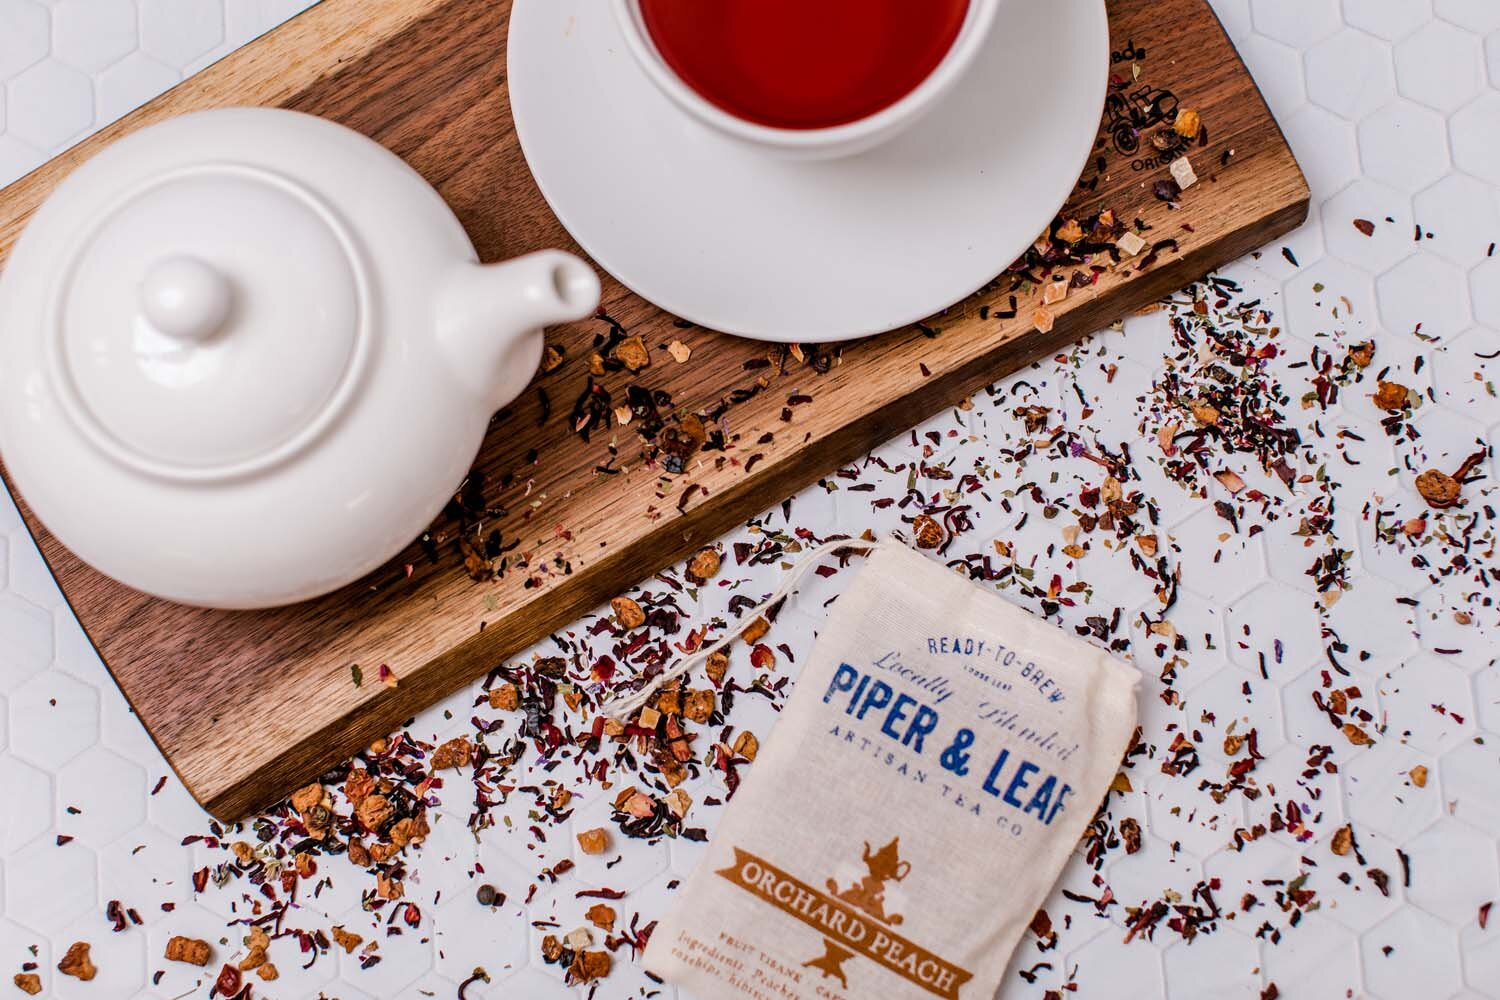 Piper & Leaf Loose Leaf Tea